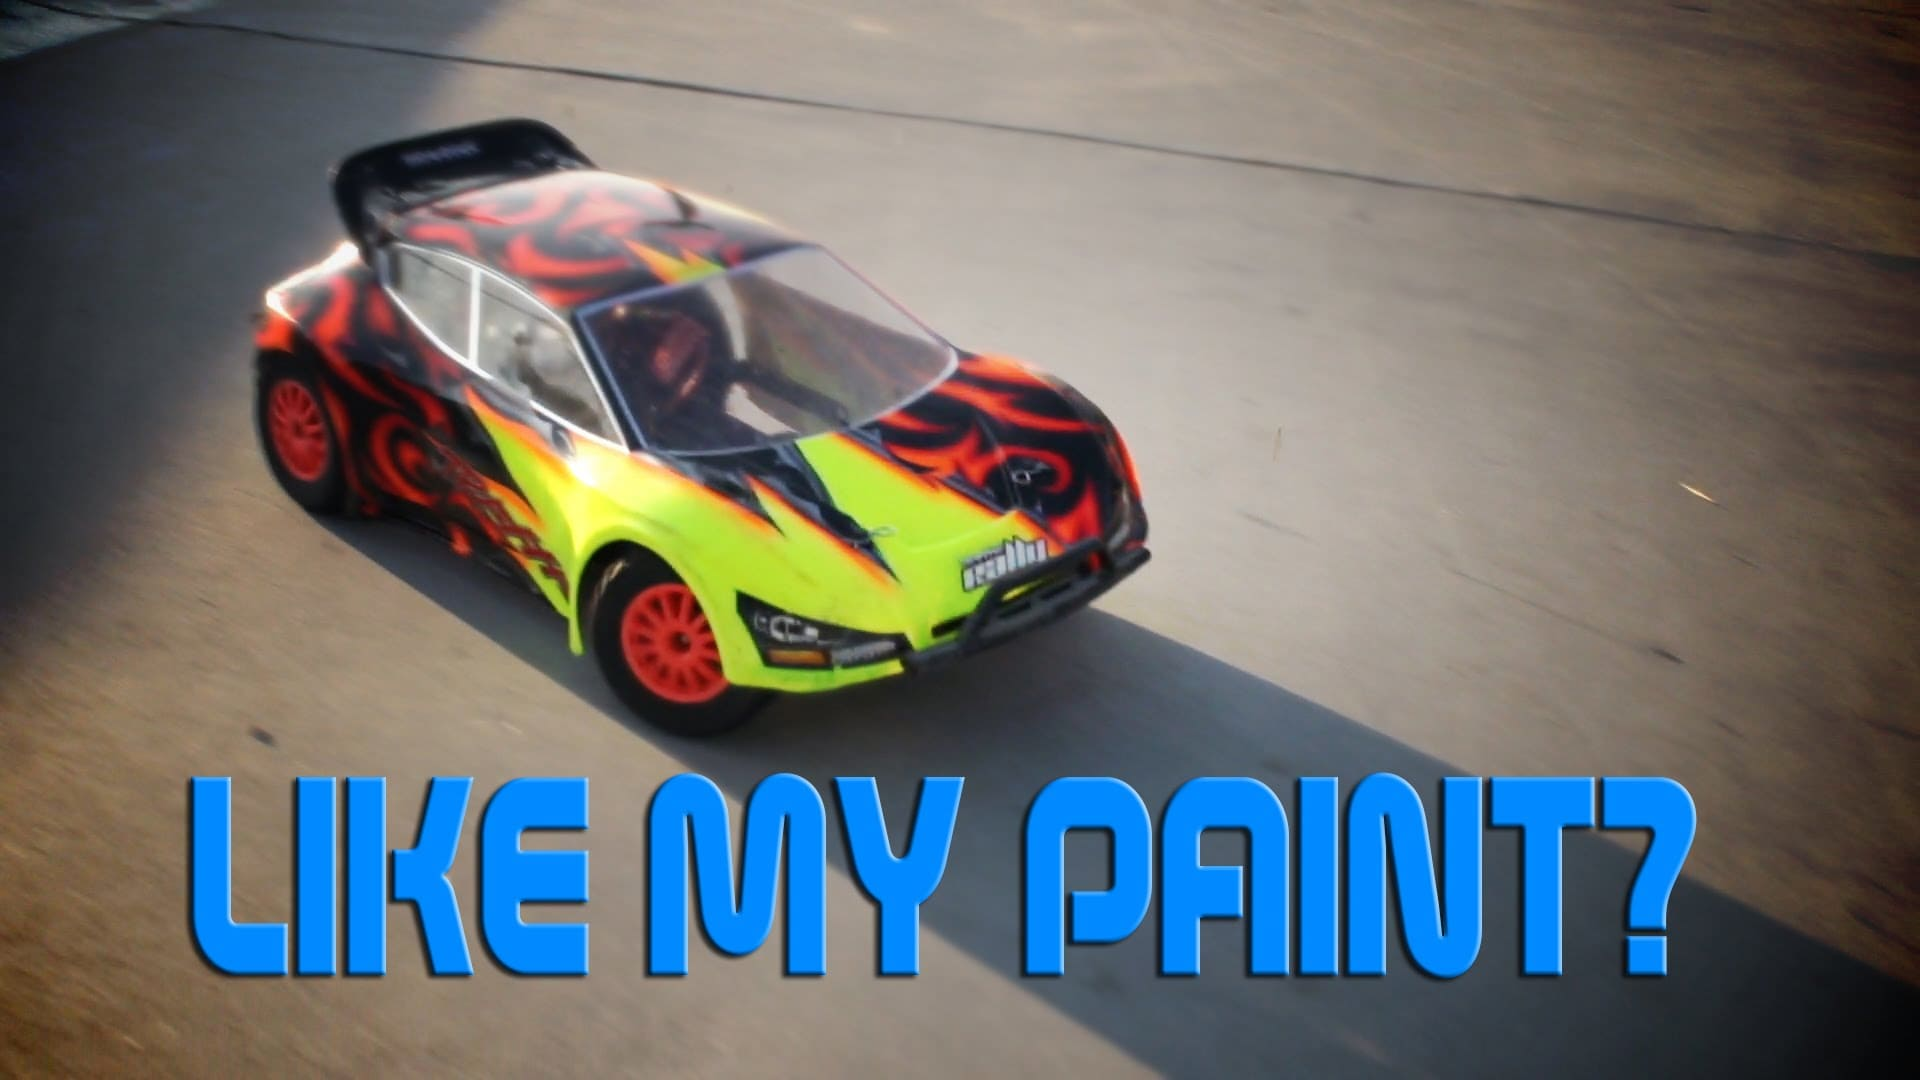 Ripping up a skate park with a Traxxas Rally [Video]